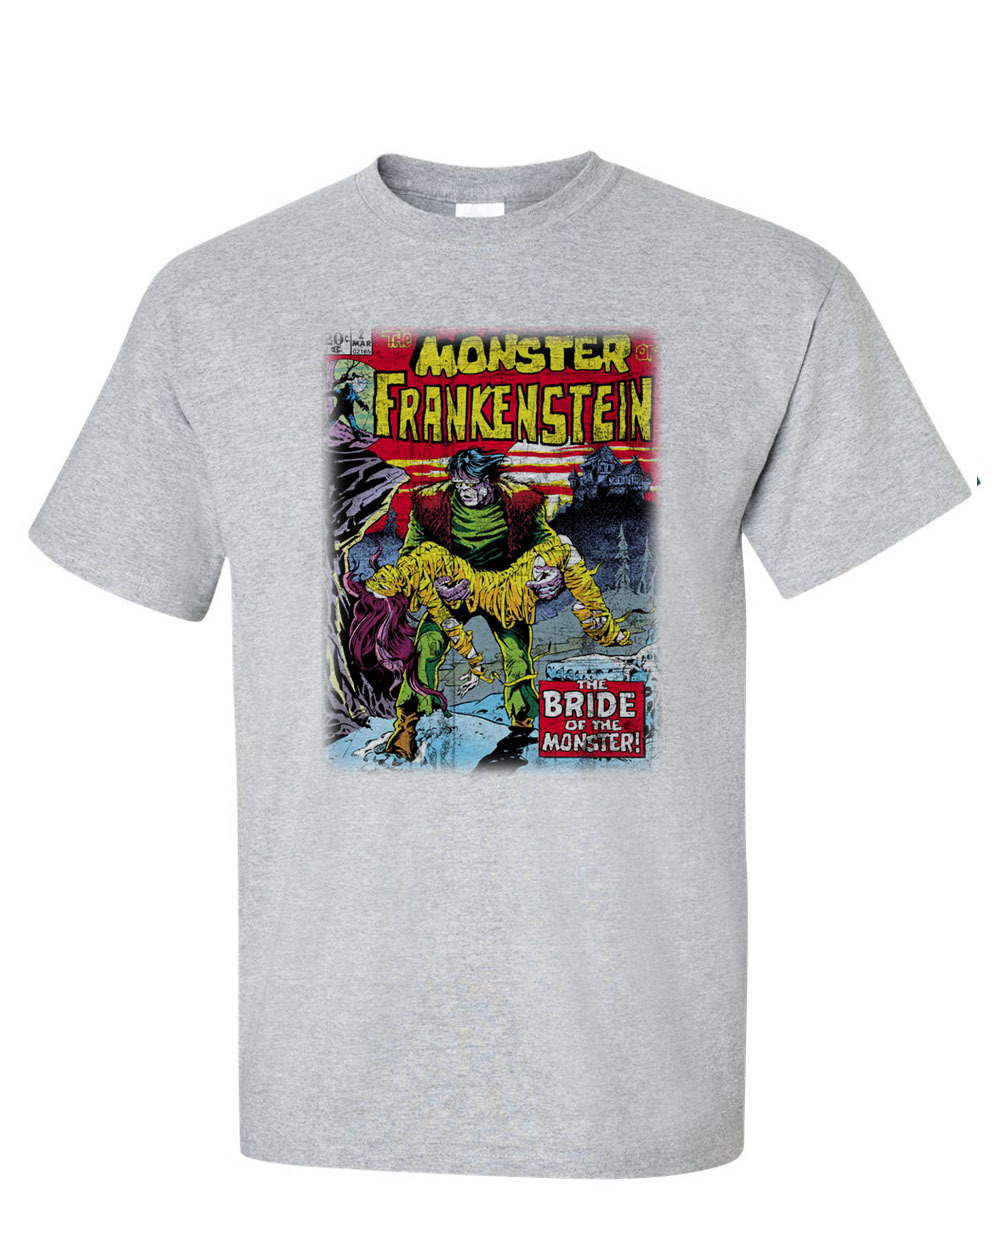 E horror comic books 1970s legion of monsters man wolf dracula graphic tee for sale online store